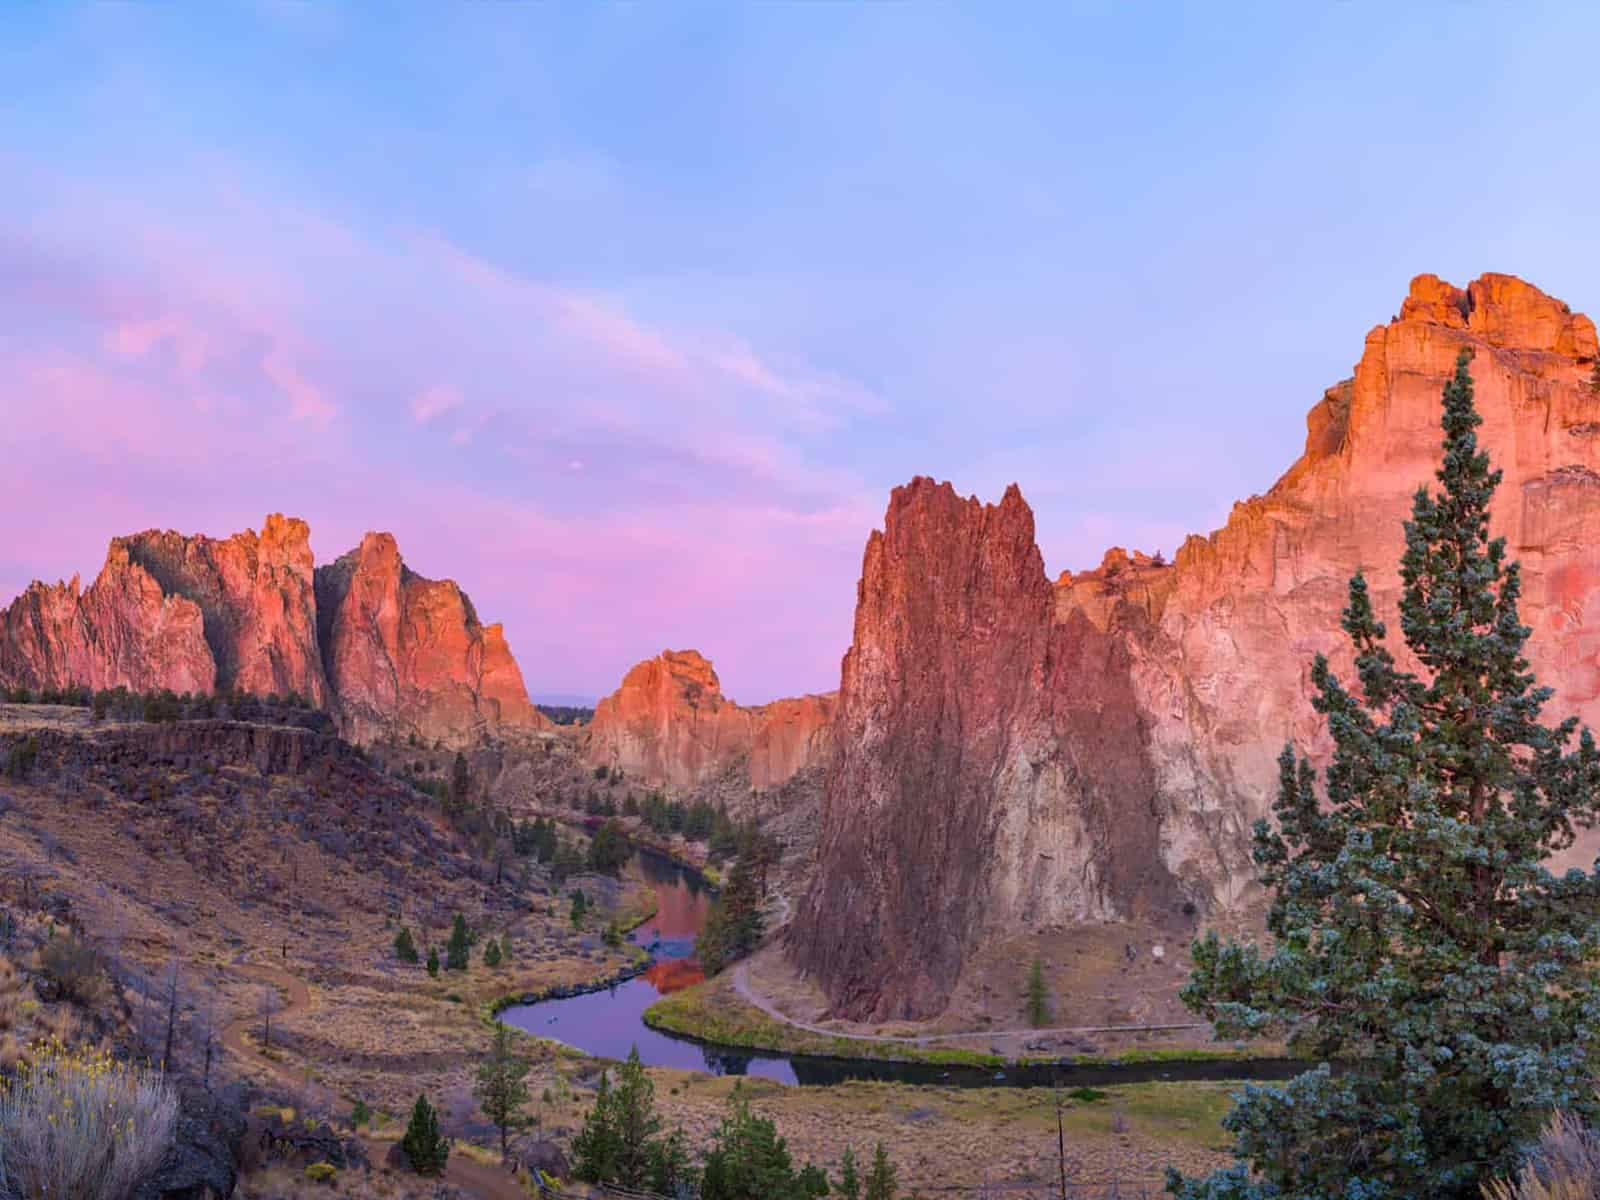 Sun setting over Smith Rock in Central Oregon